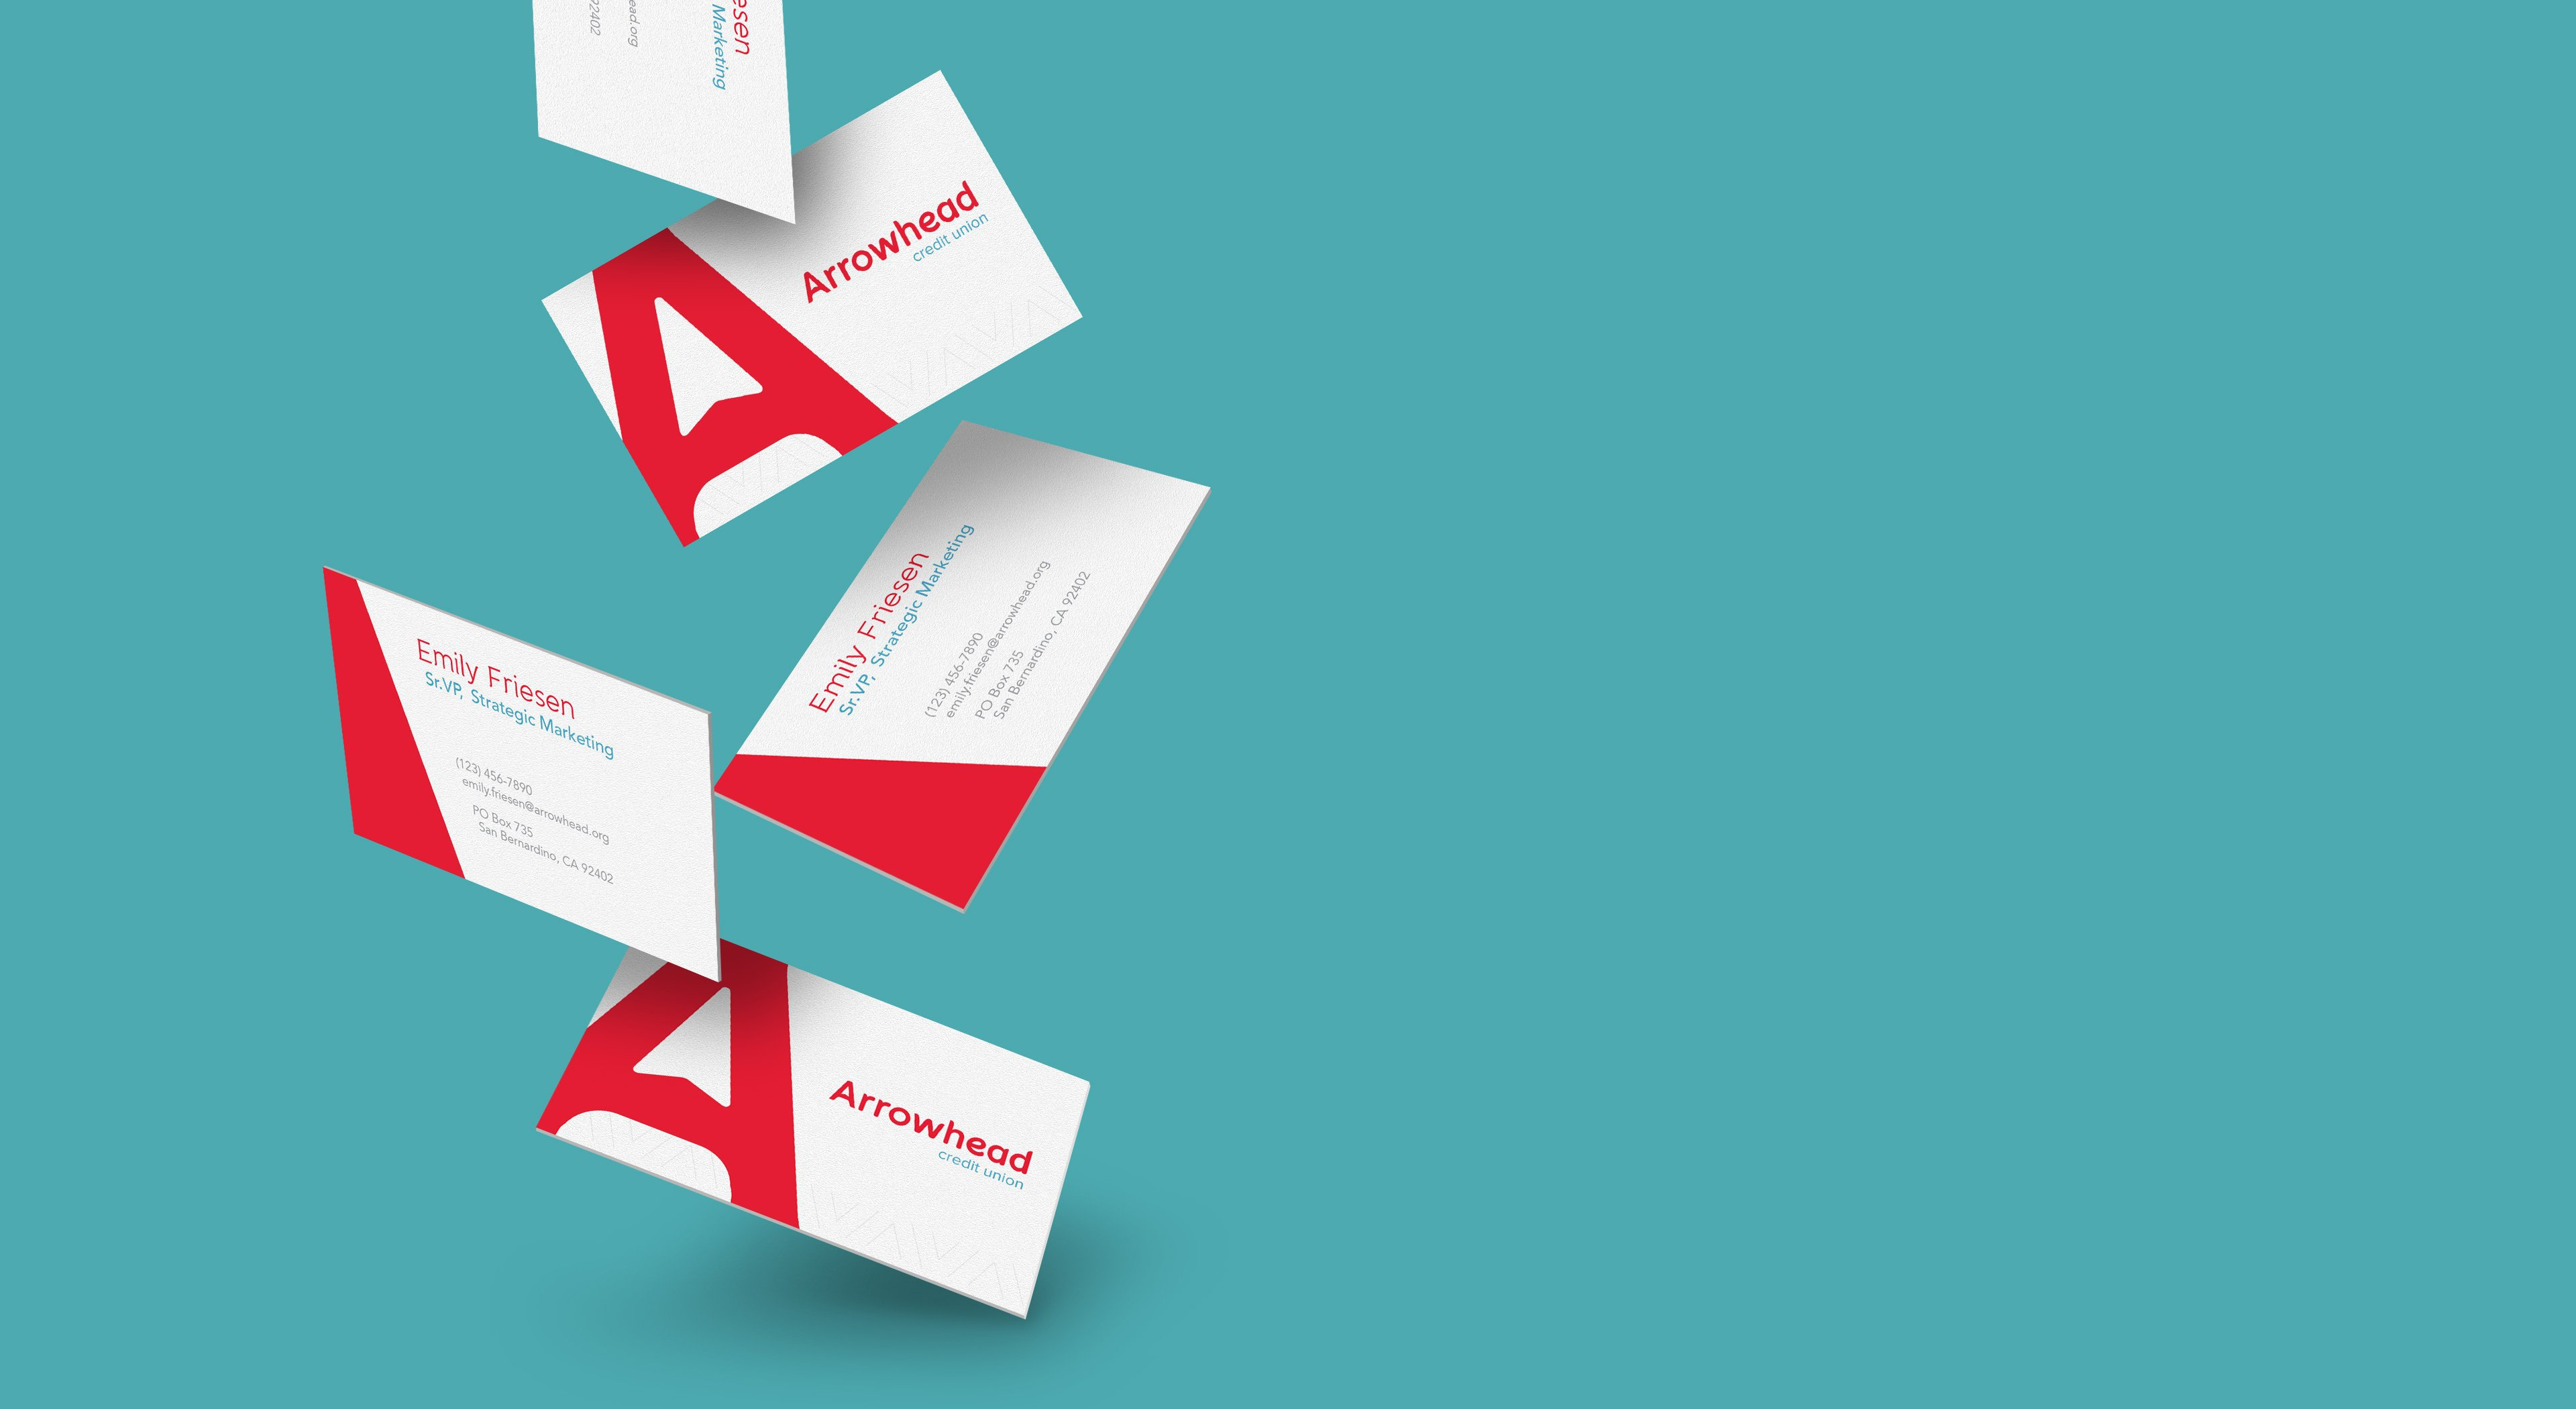 Arrowhead Credit Union brand identity